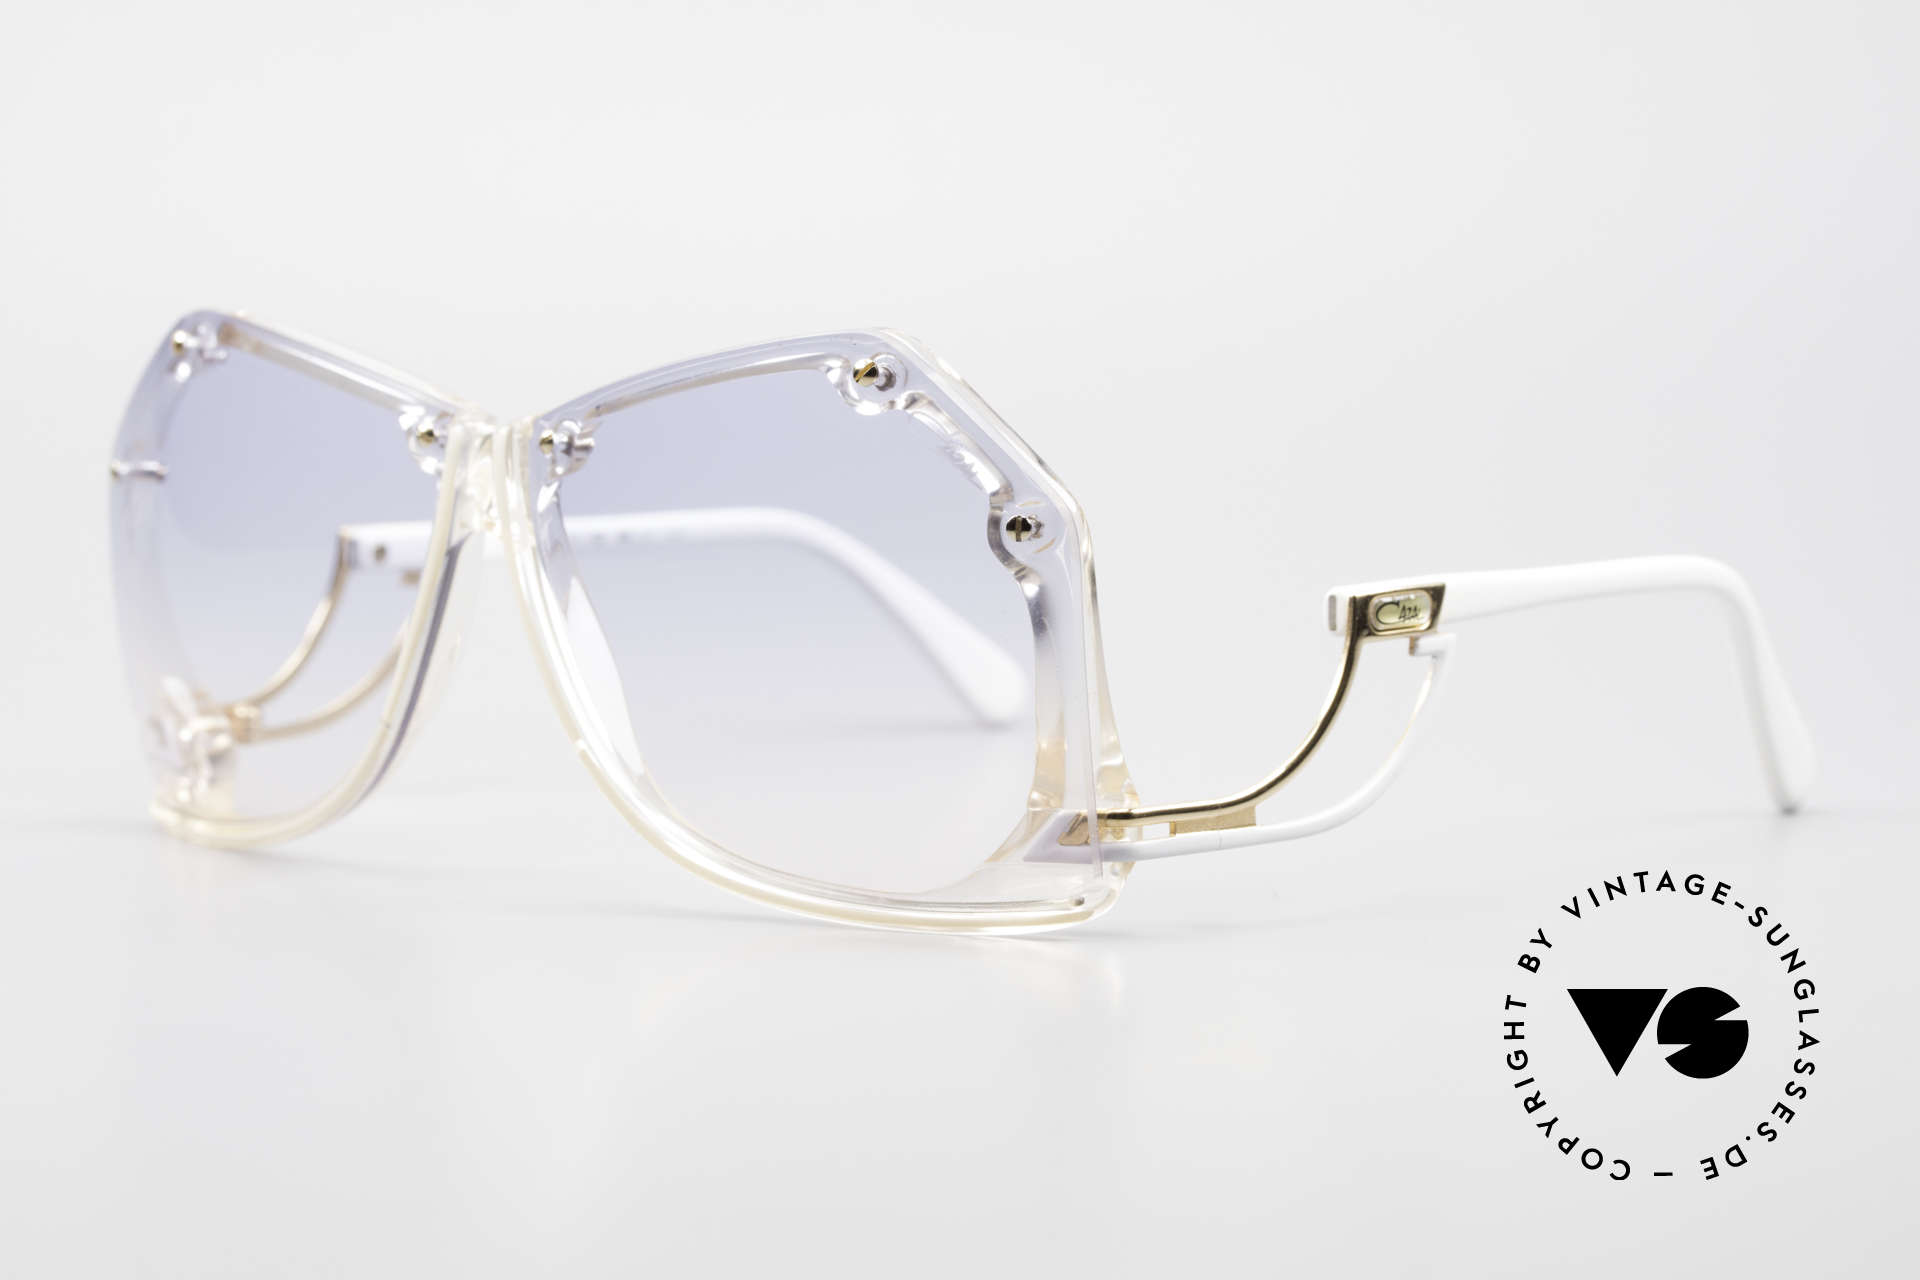 Cazal 860 The Most Beautiful 80's Cazal, terrific design by style guru Mr . CAri ZALoni, Made for Women